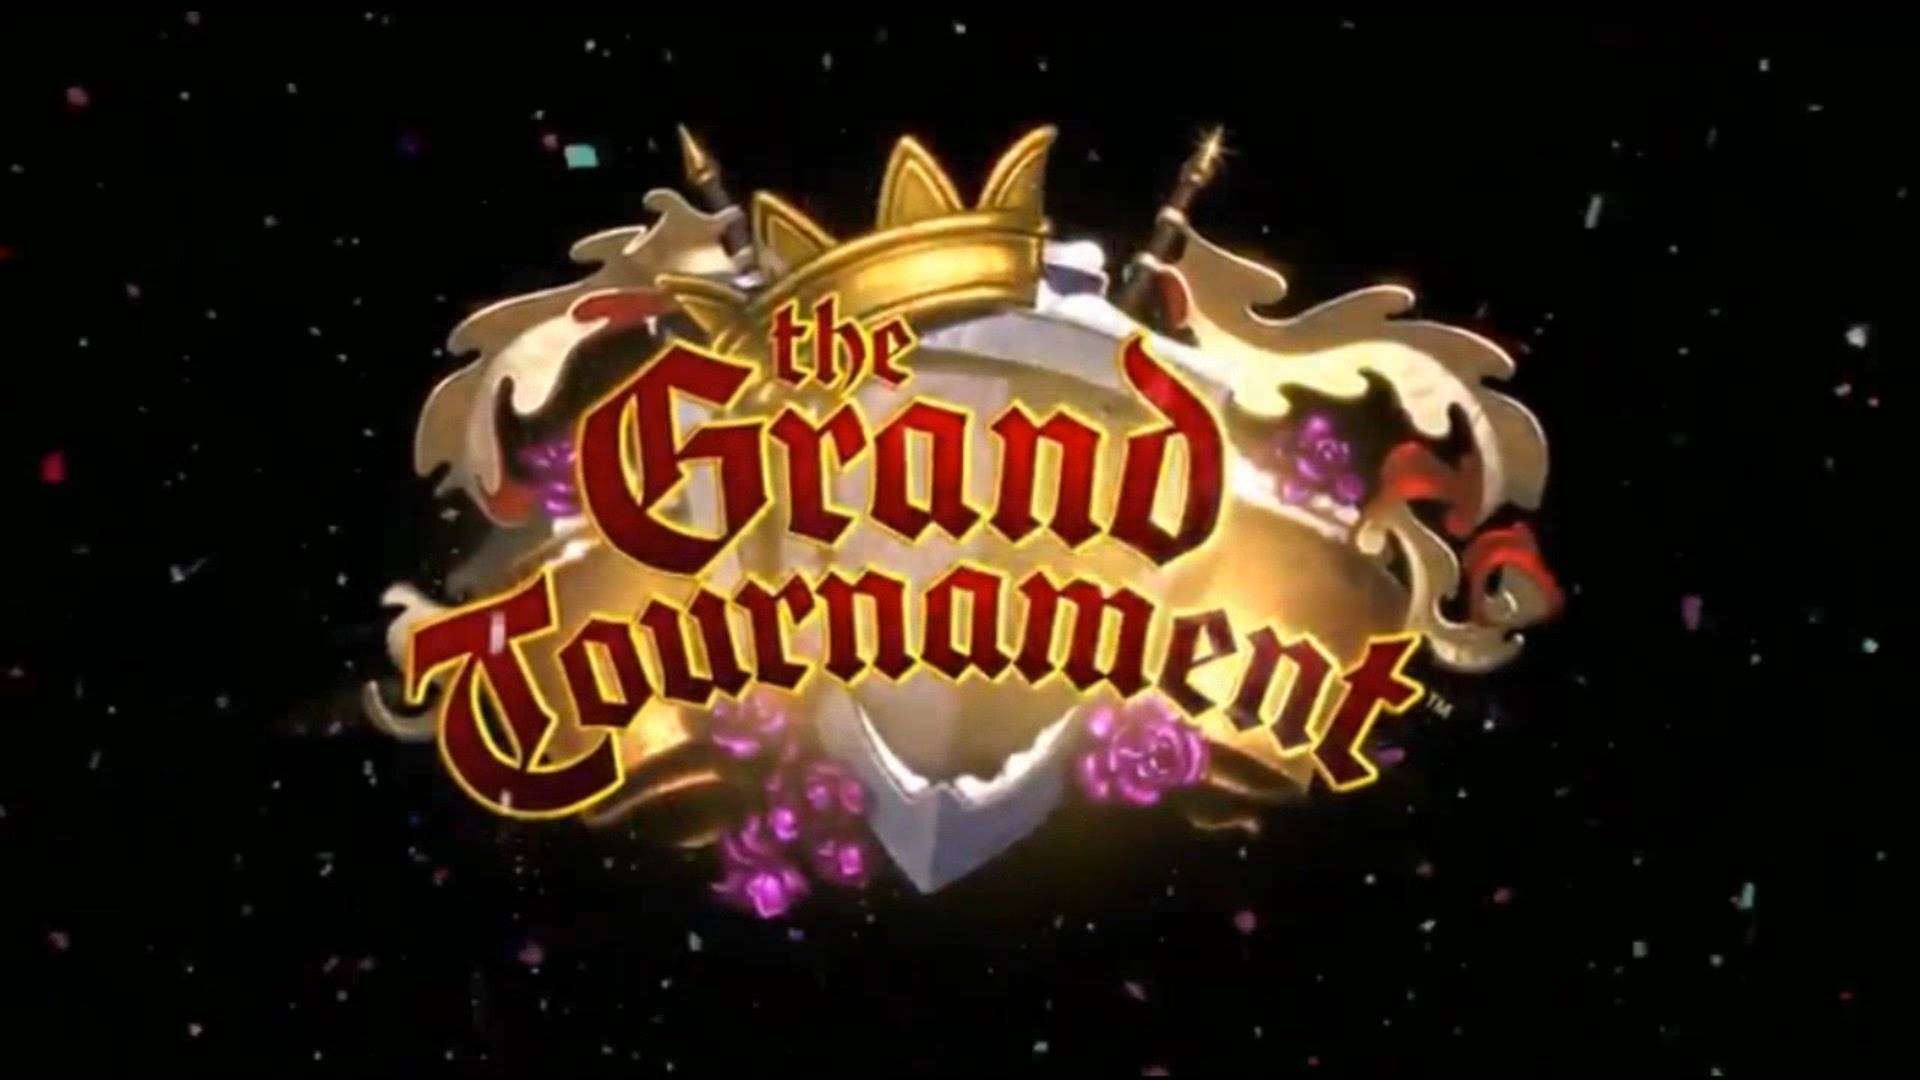 Hearthstone: The Grand Tournament HQ wallpapers